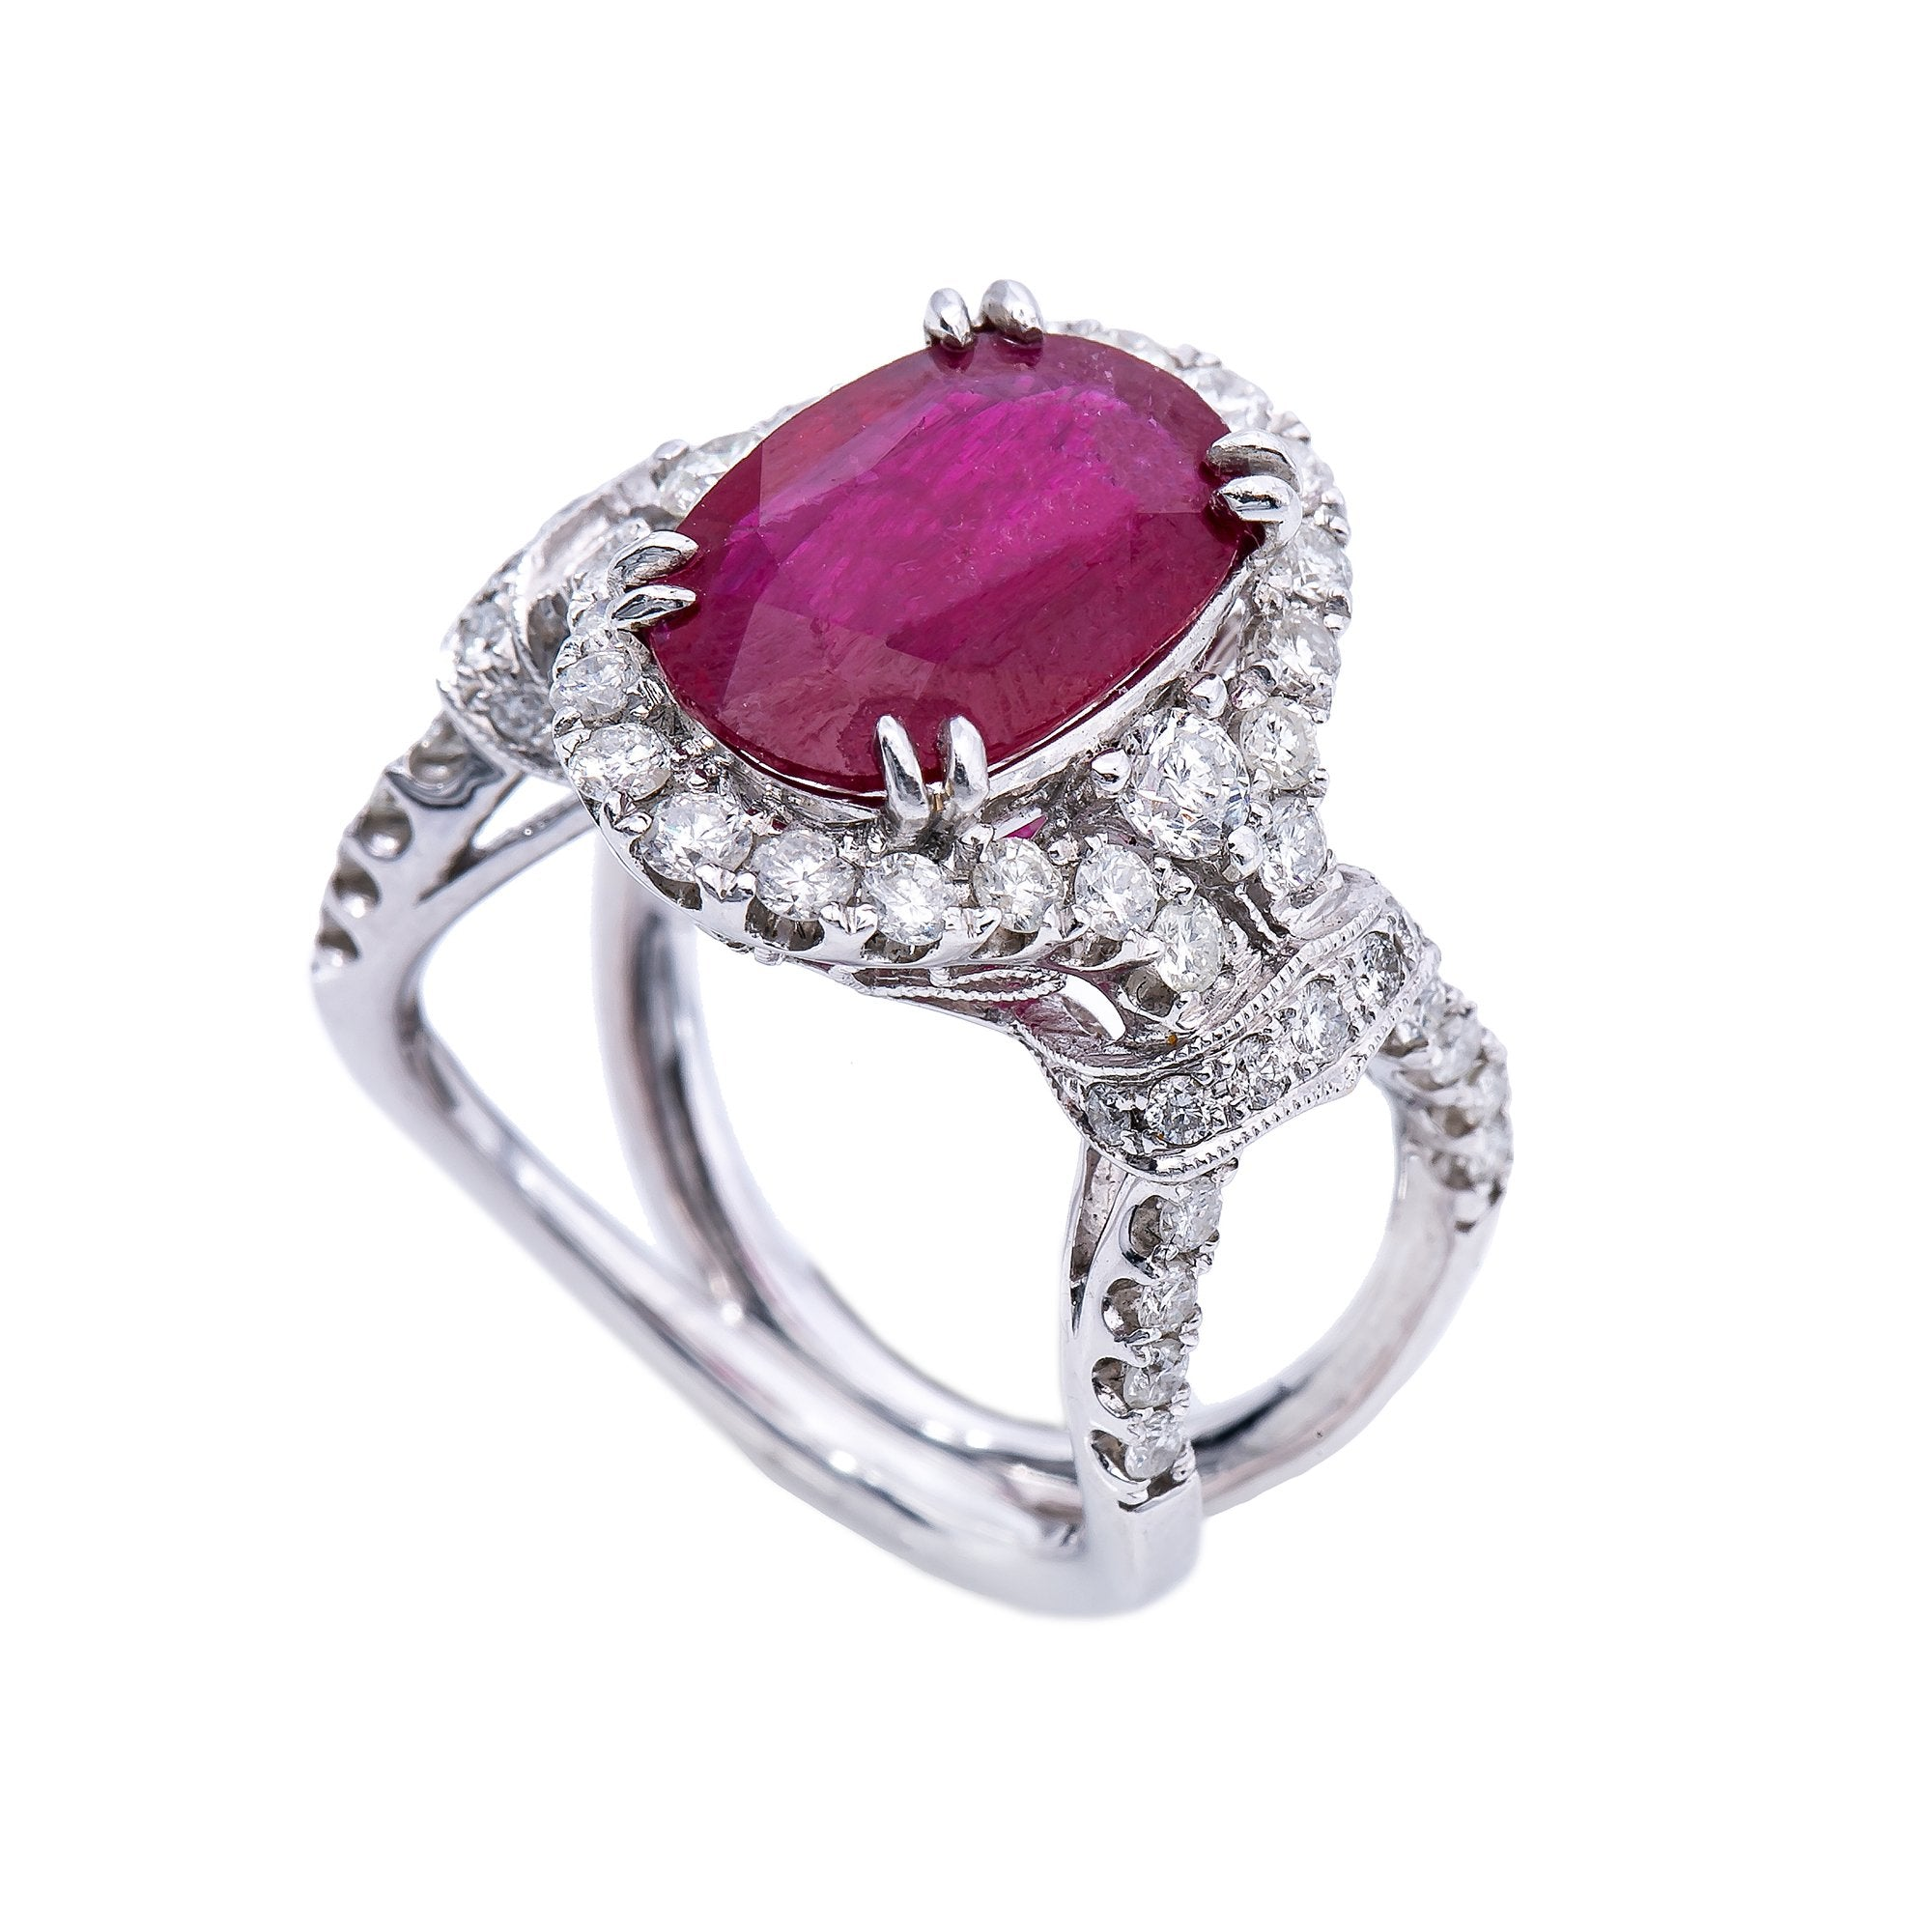 18K White Gold Oval Shaped Ruby Ring